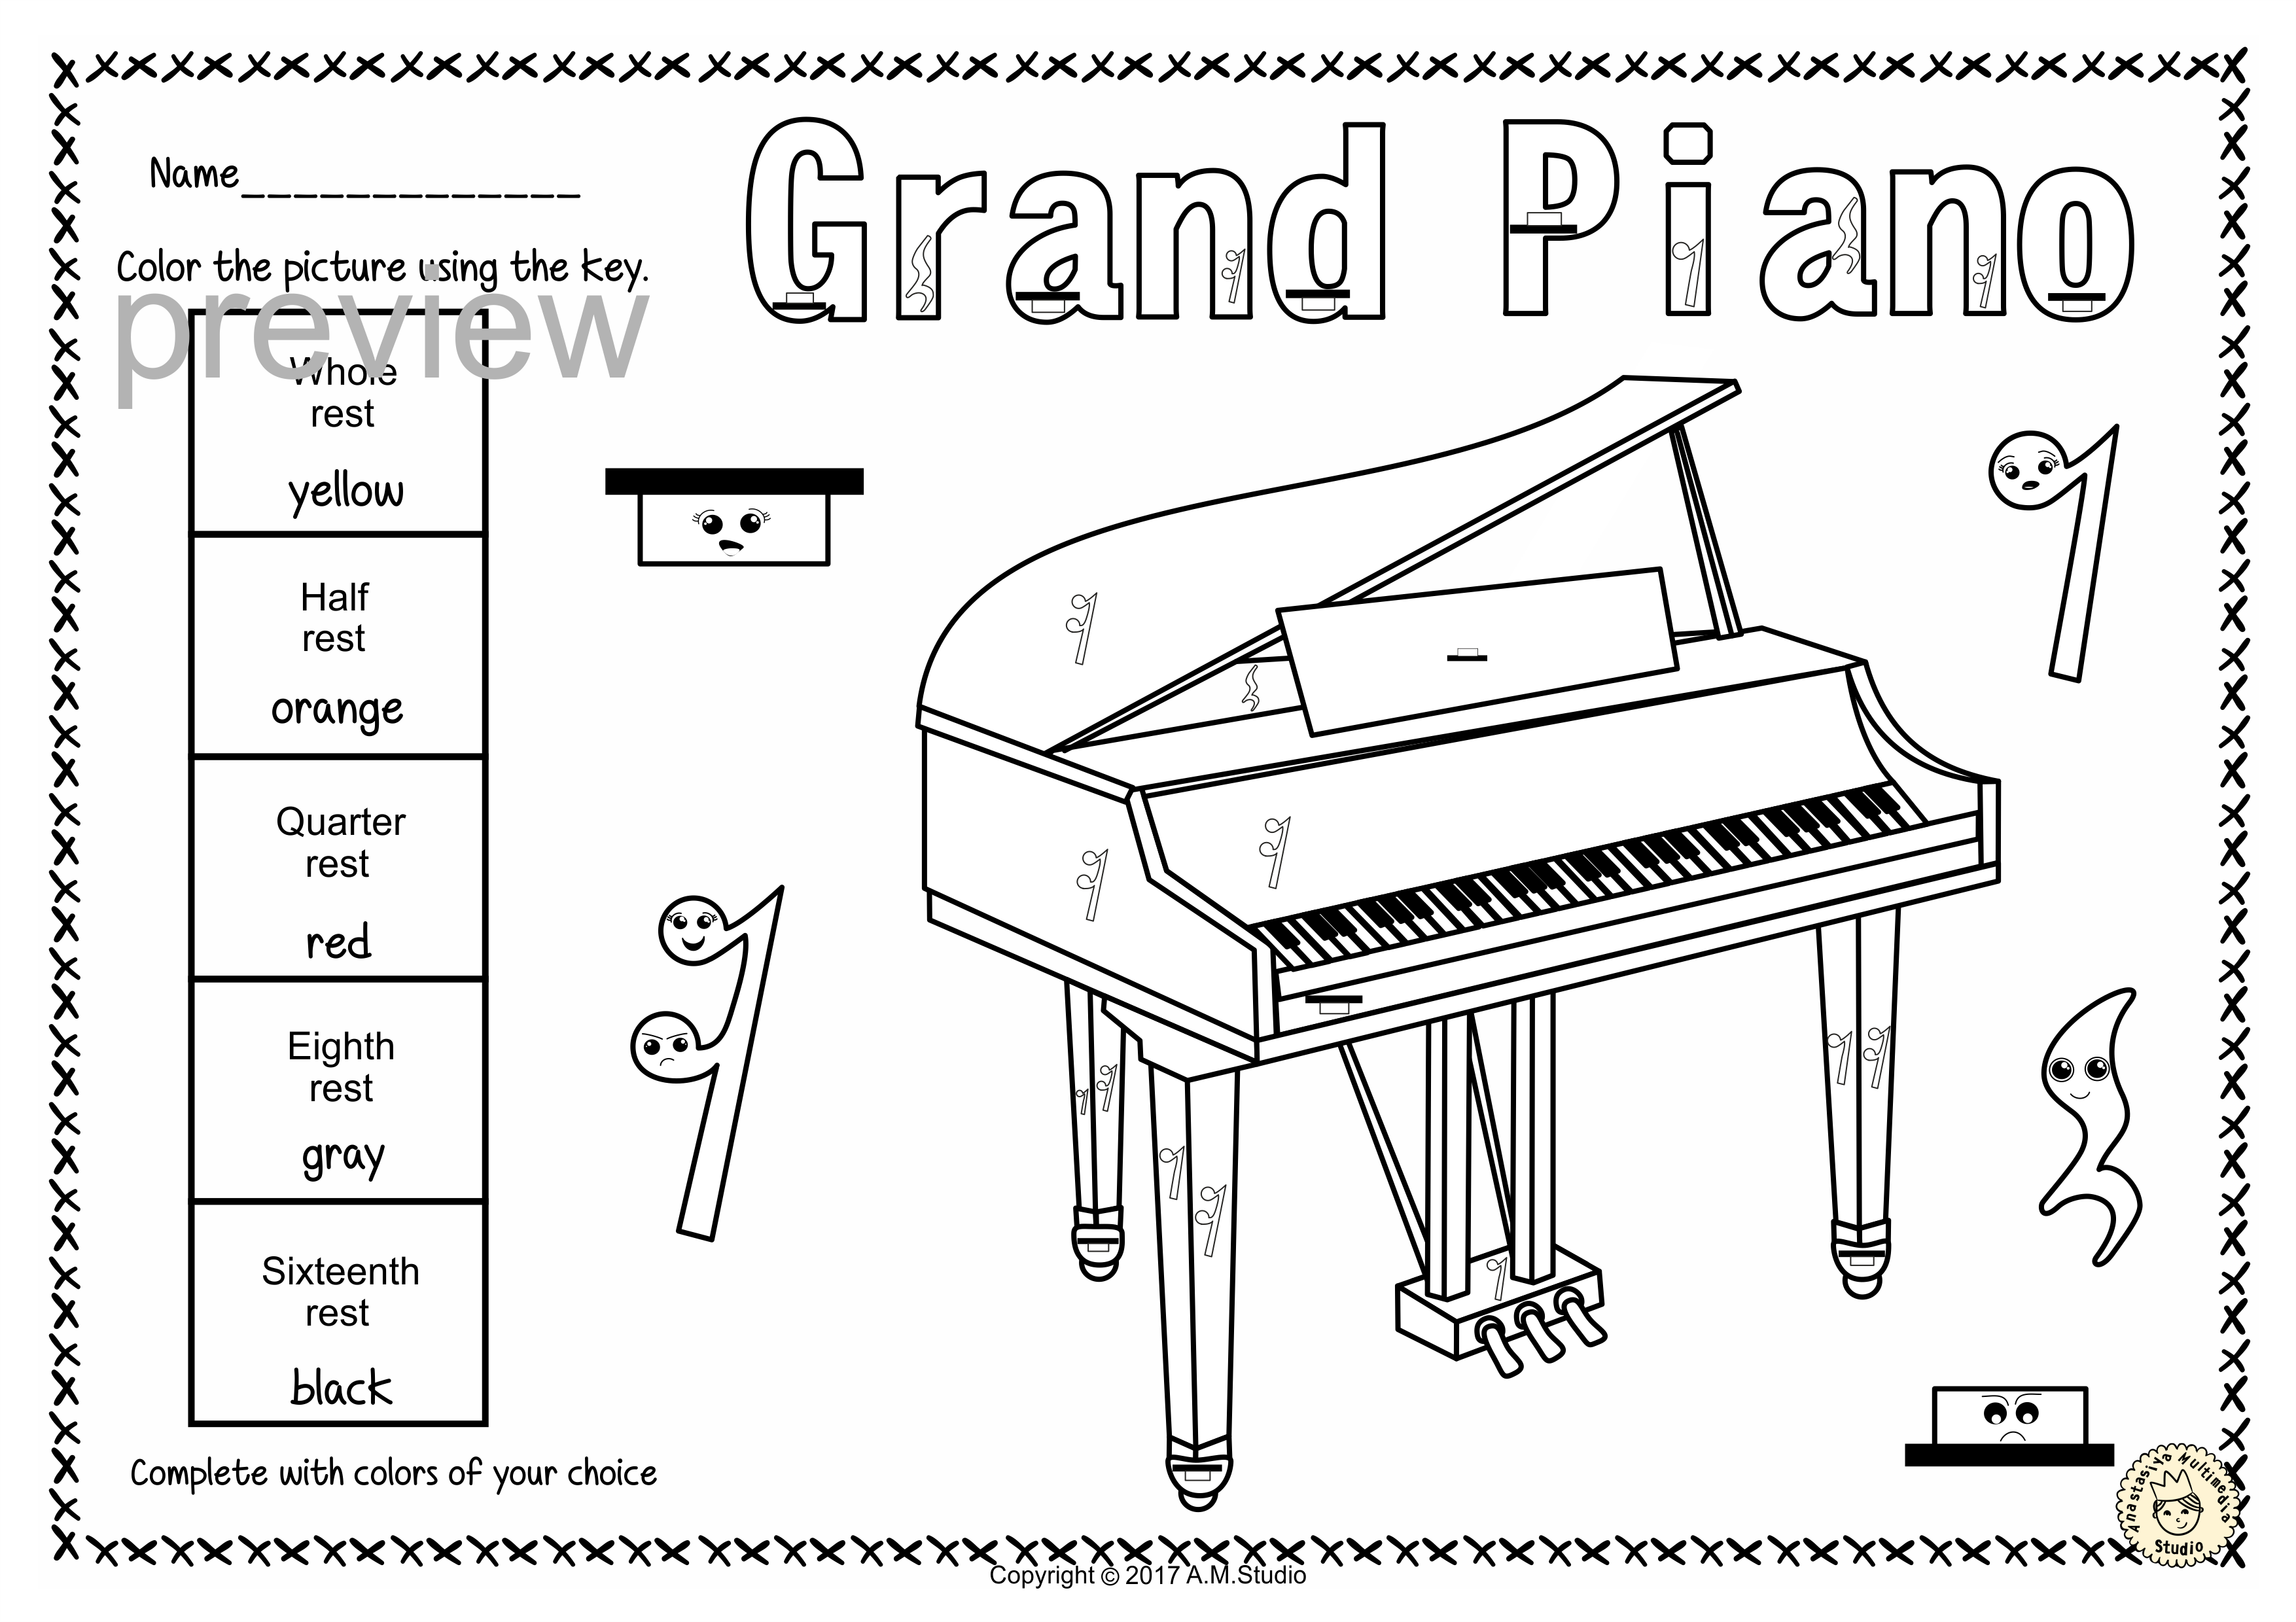 This Set Contains 7 Designs Of Keyboard Musical Instruments Accordion Celesta Clavichord Grand Piano Harpsichord Music Page Music Keyboard Instruments